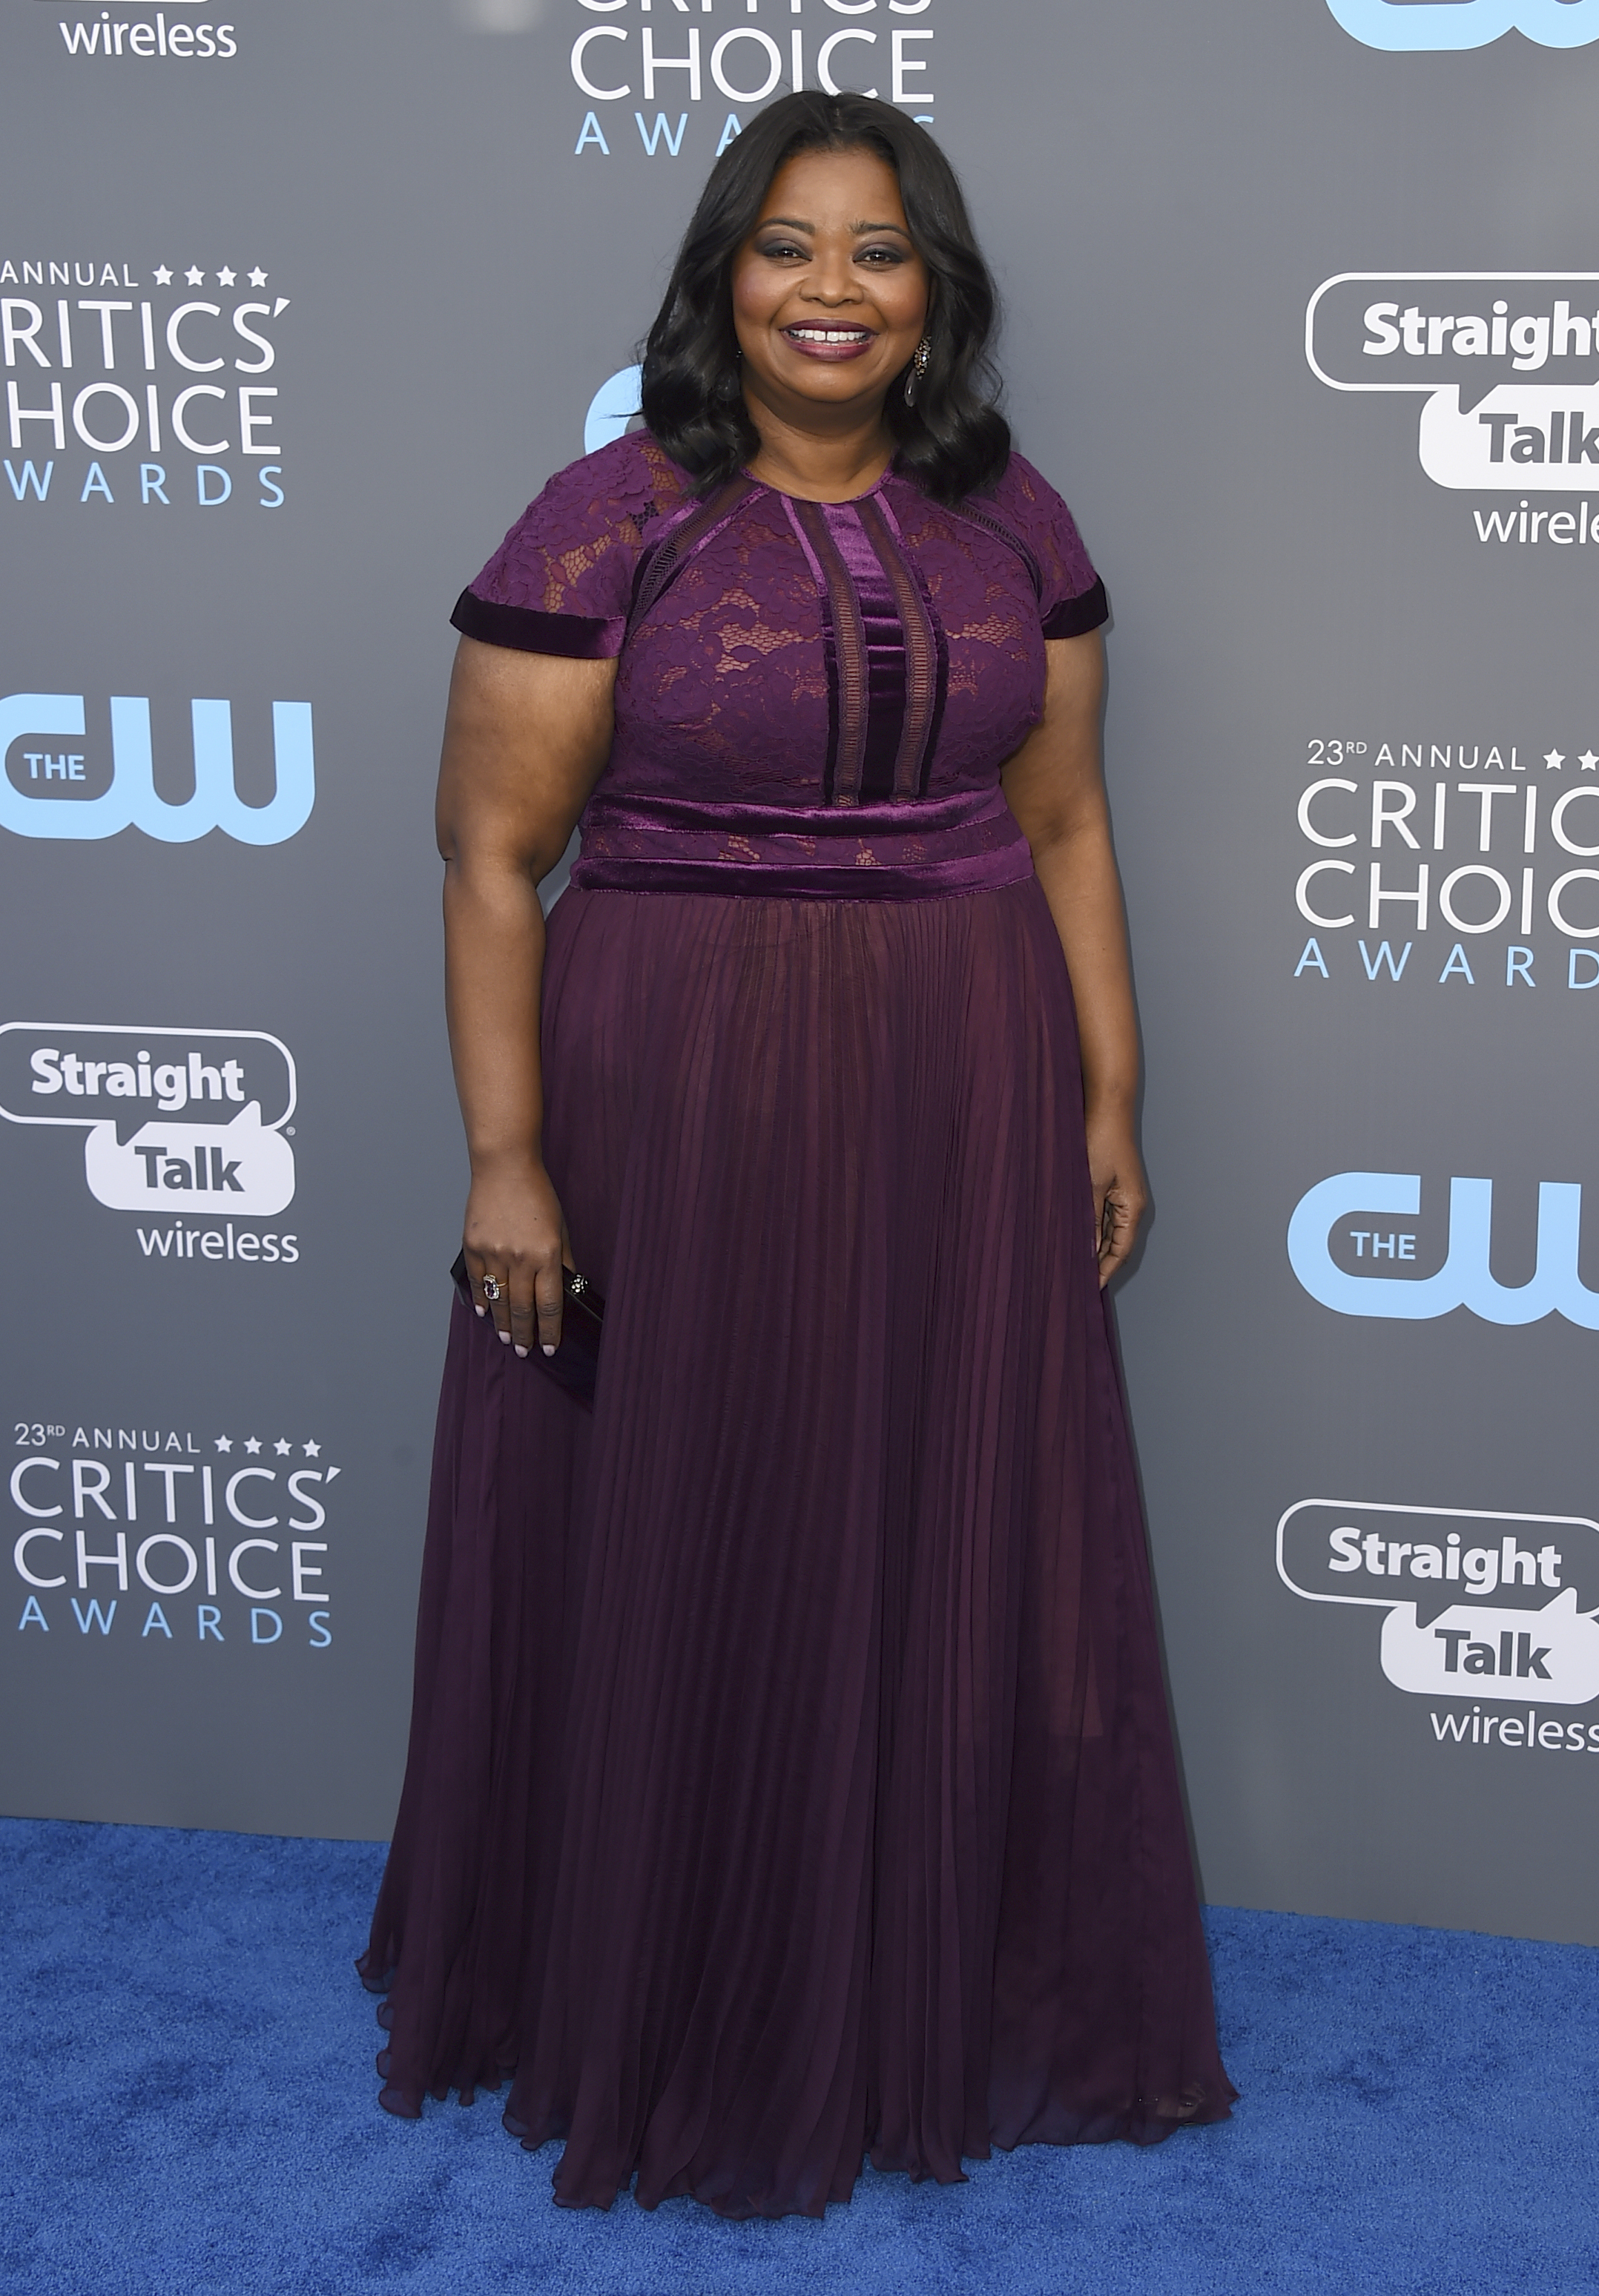 <div class='meta'><div class='origin-logo' data-origin='AP'></div><span class='caption-text' data-credit='Jordan Strauss/Invision/AP'>Octavia Spencer arrives at the 23rd annual Critics' Choice Awards at the Barker Hangar on Thursday, Jan. 11, 2018, in Santa Monica, Calif.</span></div>